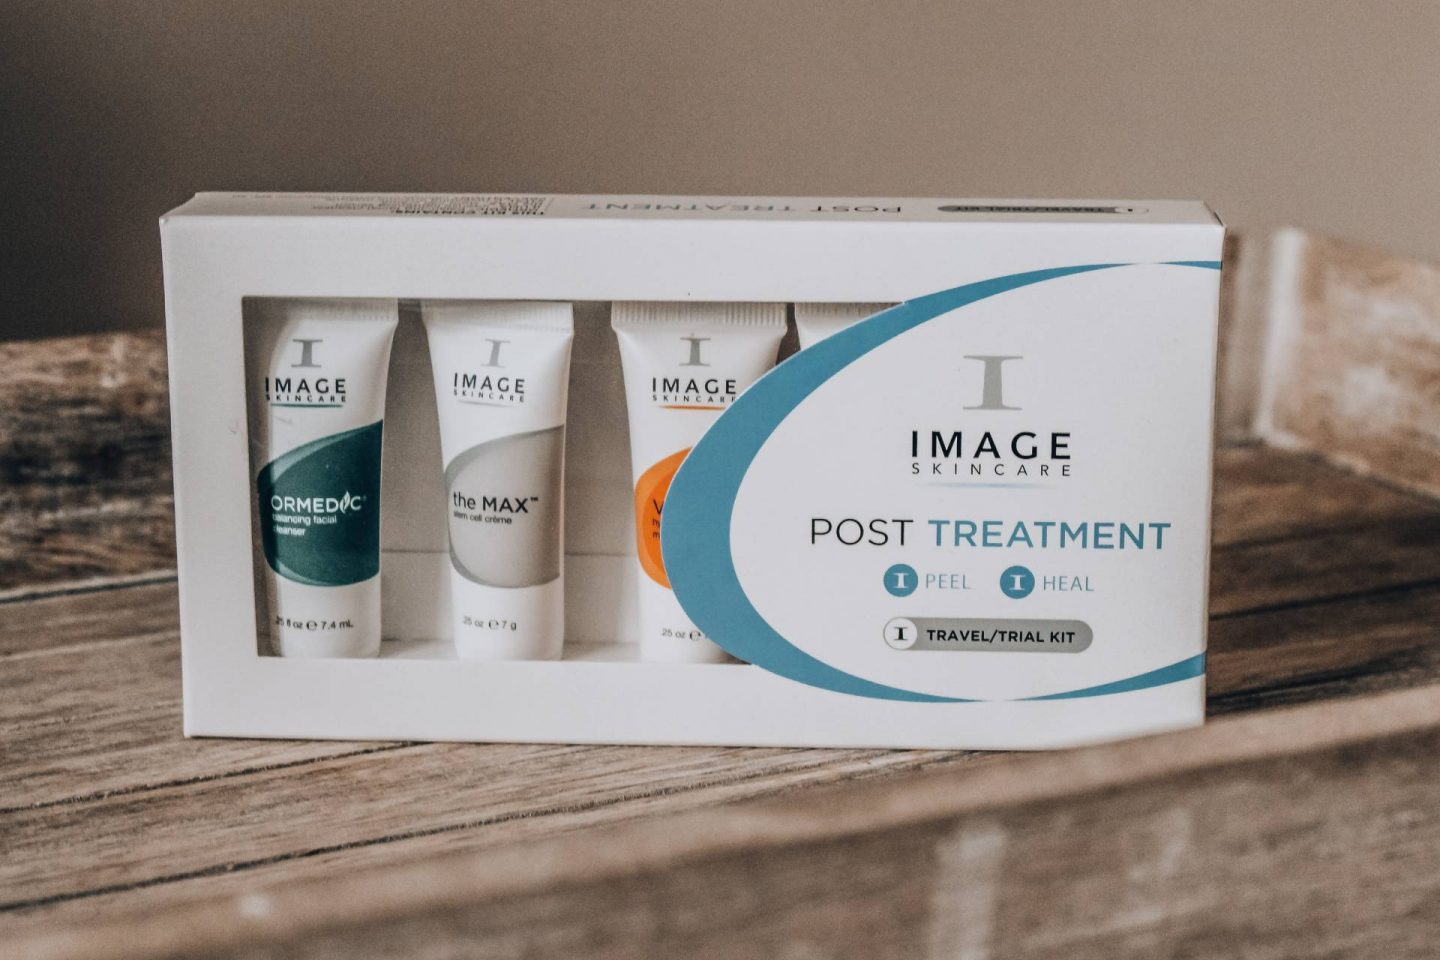 Image Post-treatment trial kit